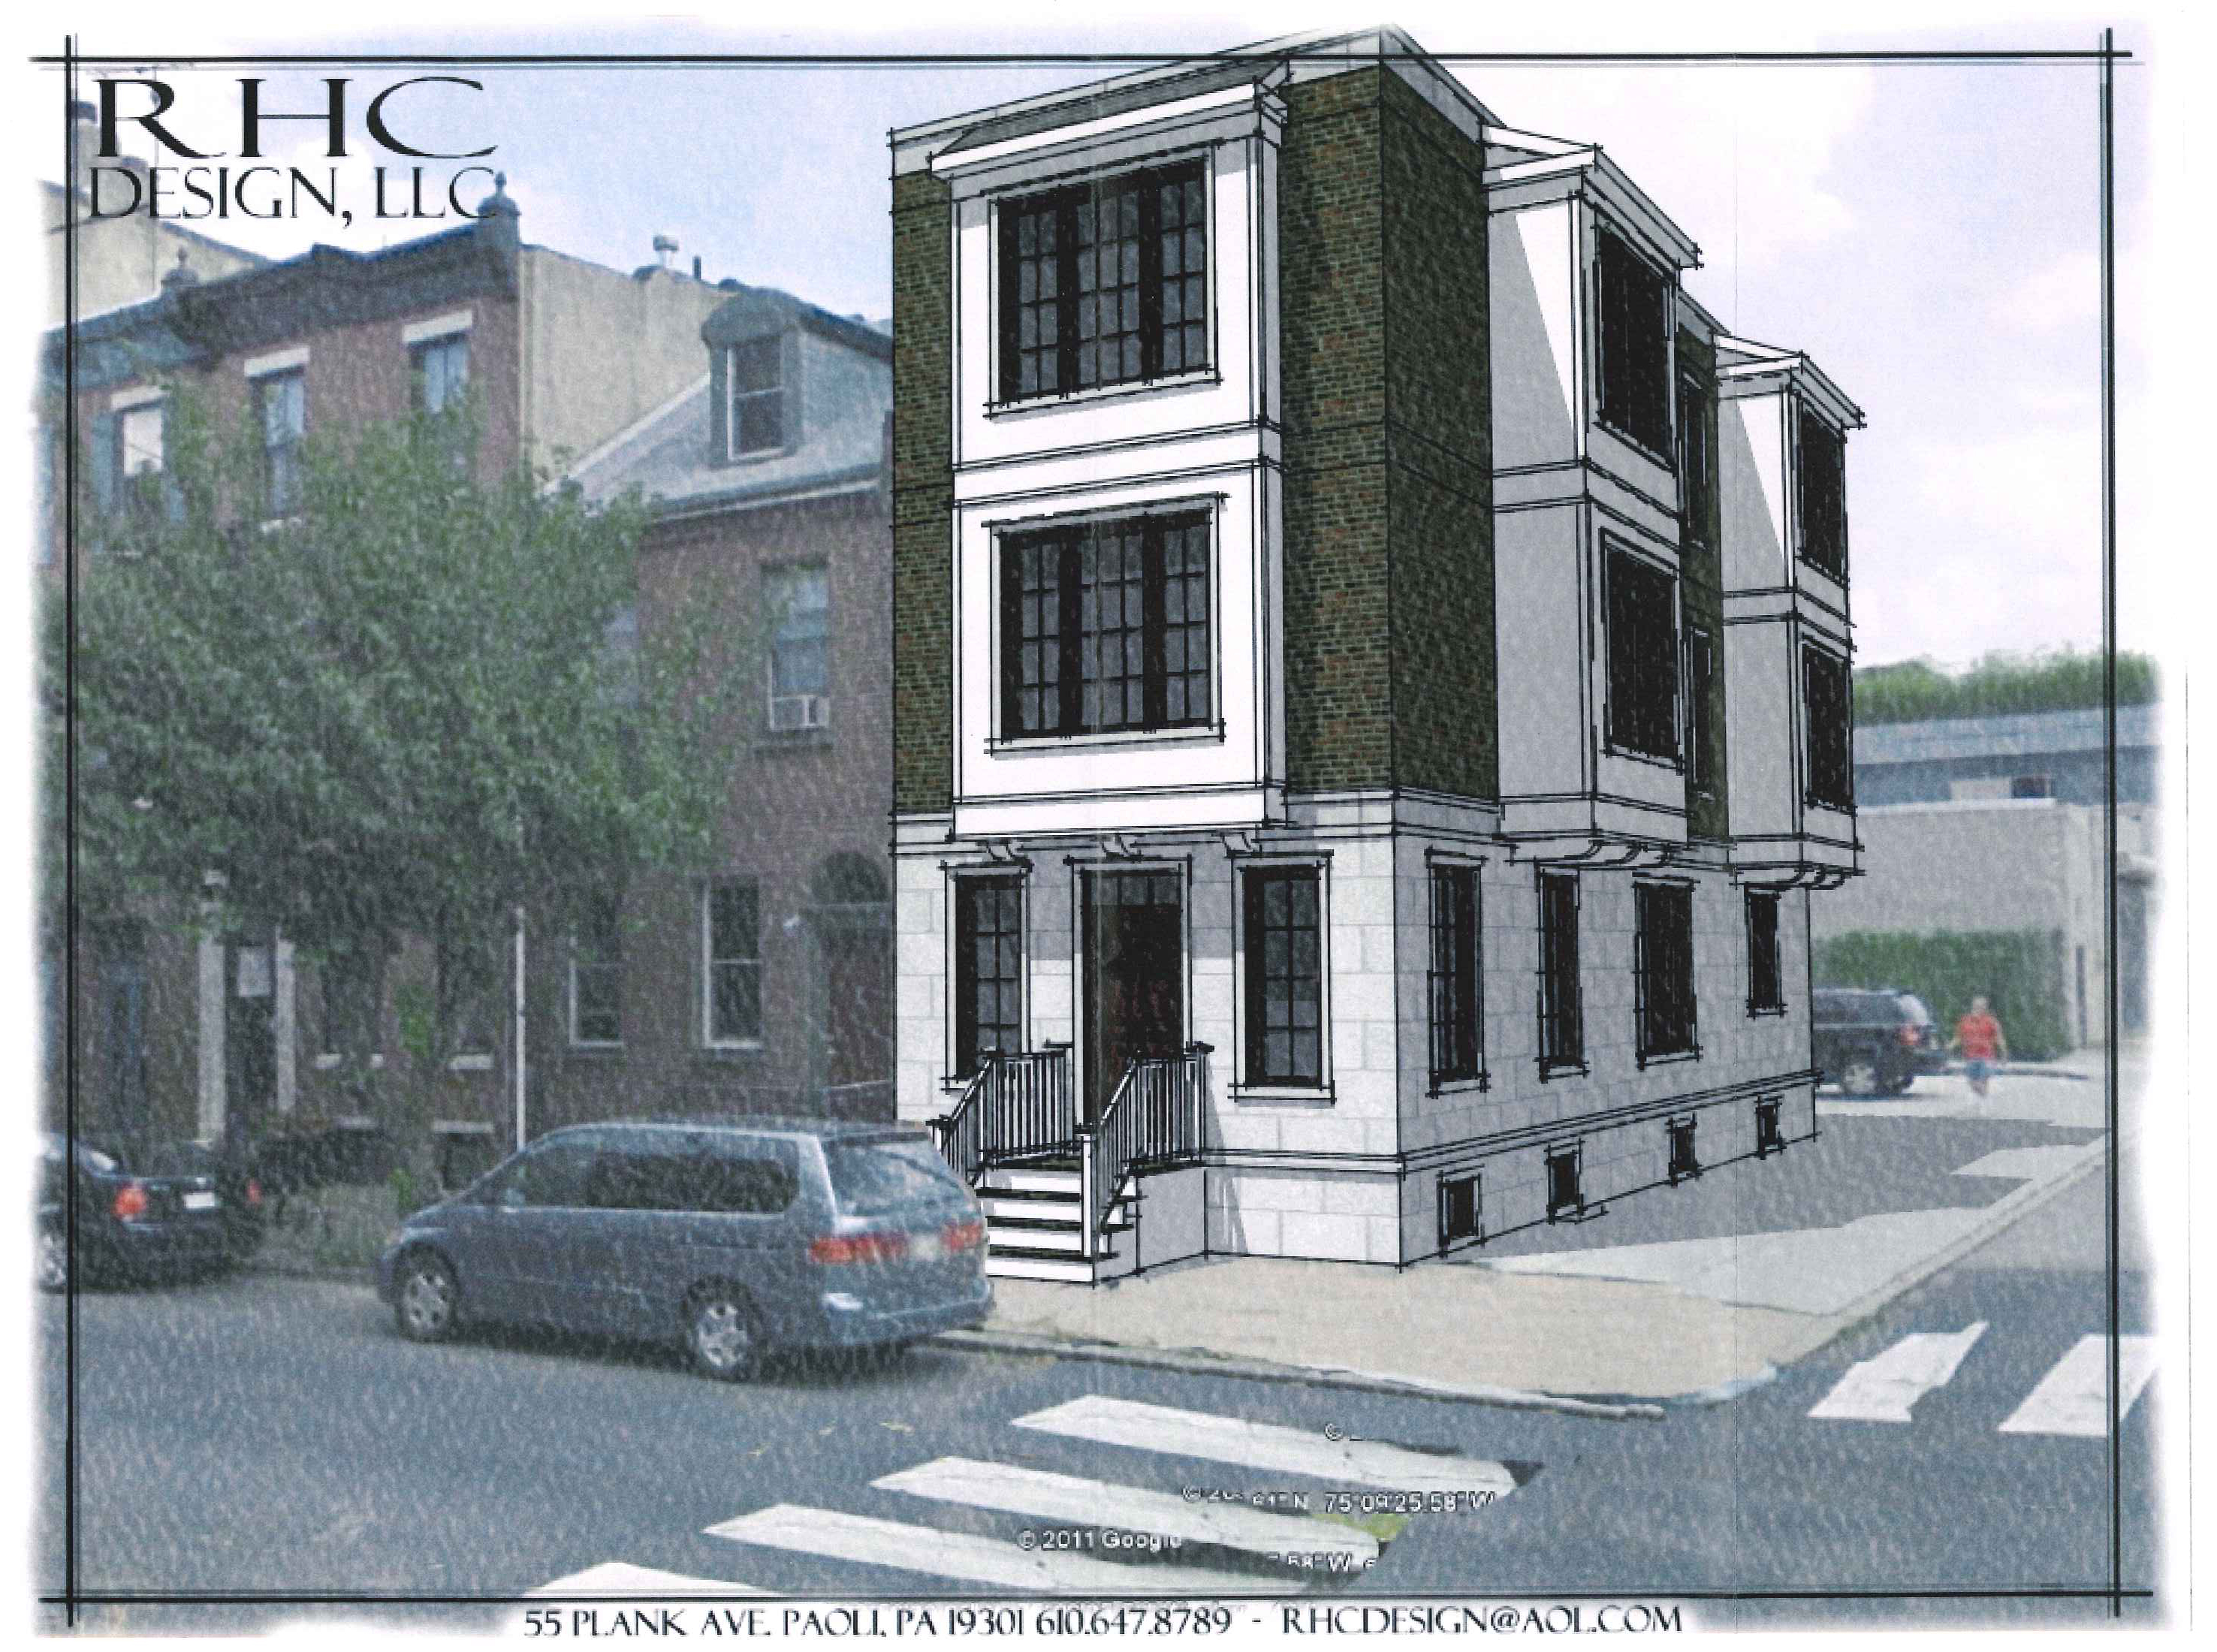 Preliminary design for the new development proposed for 631 S. 9th Street.